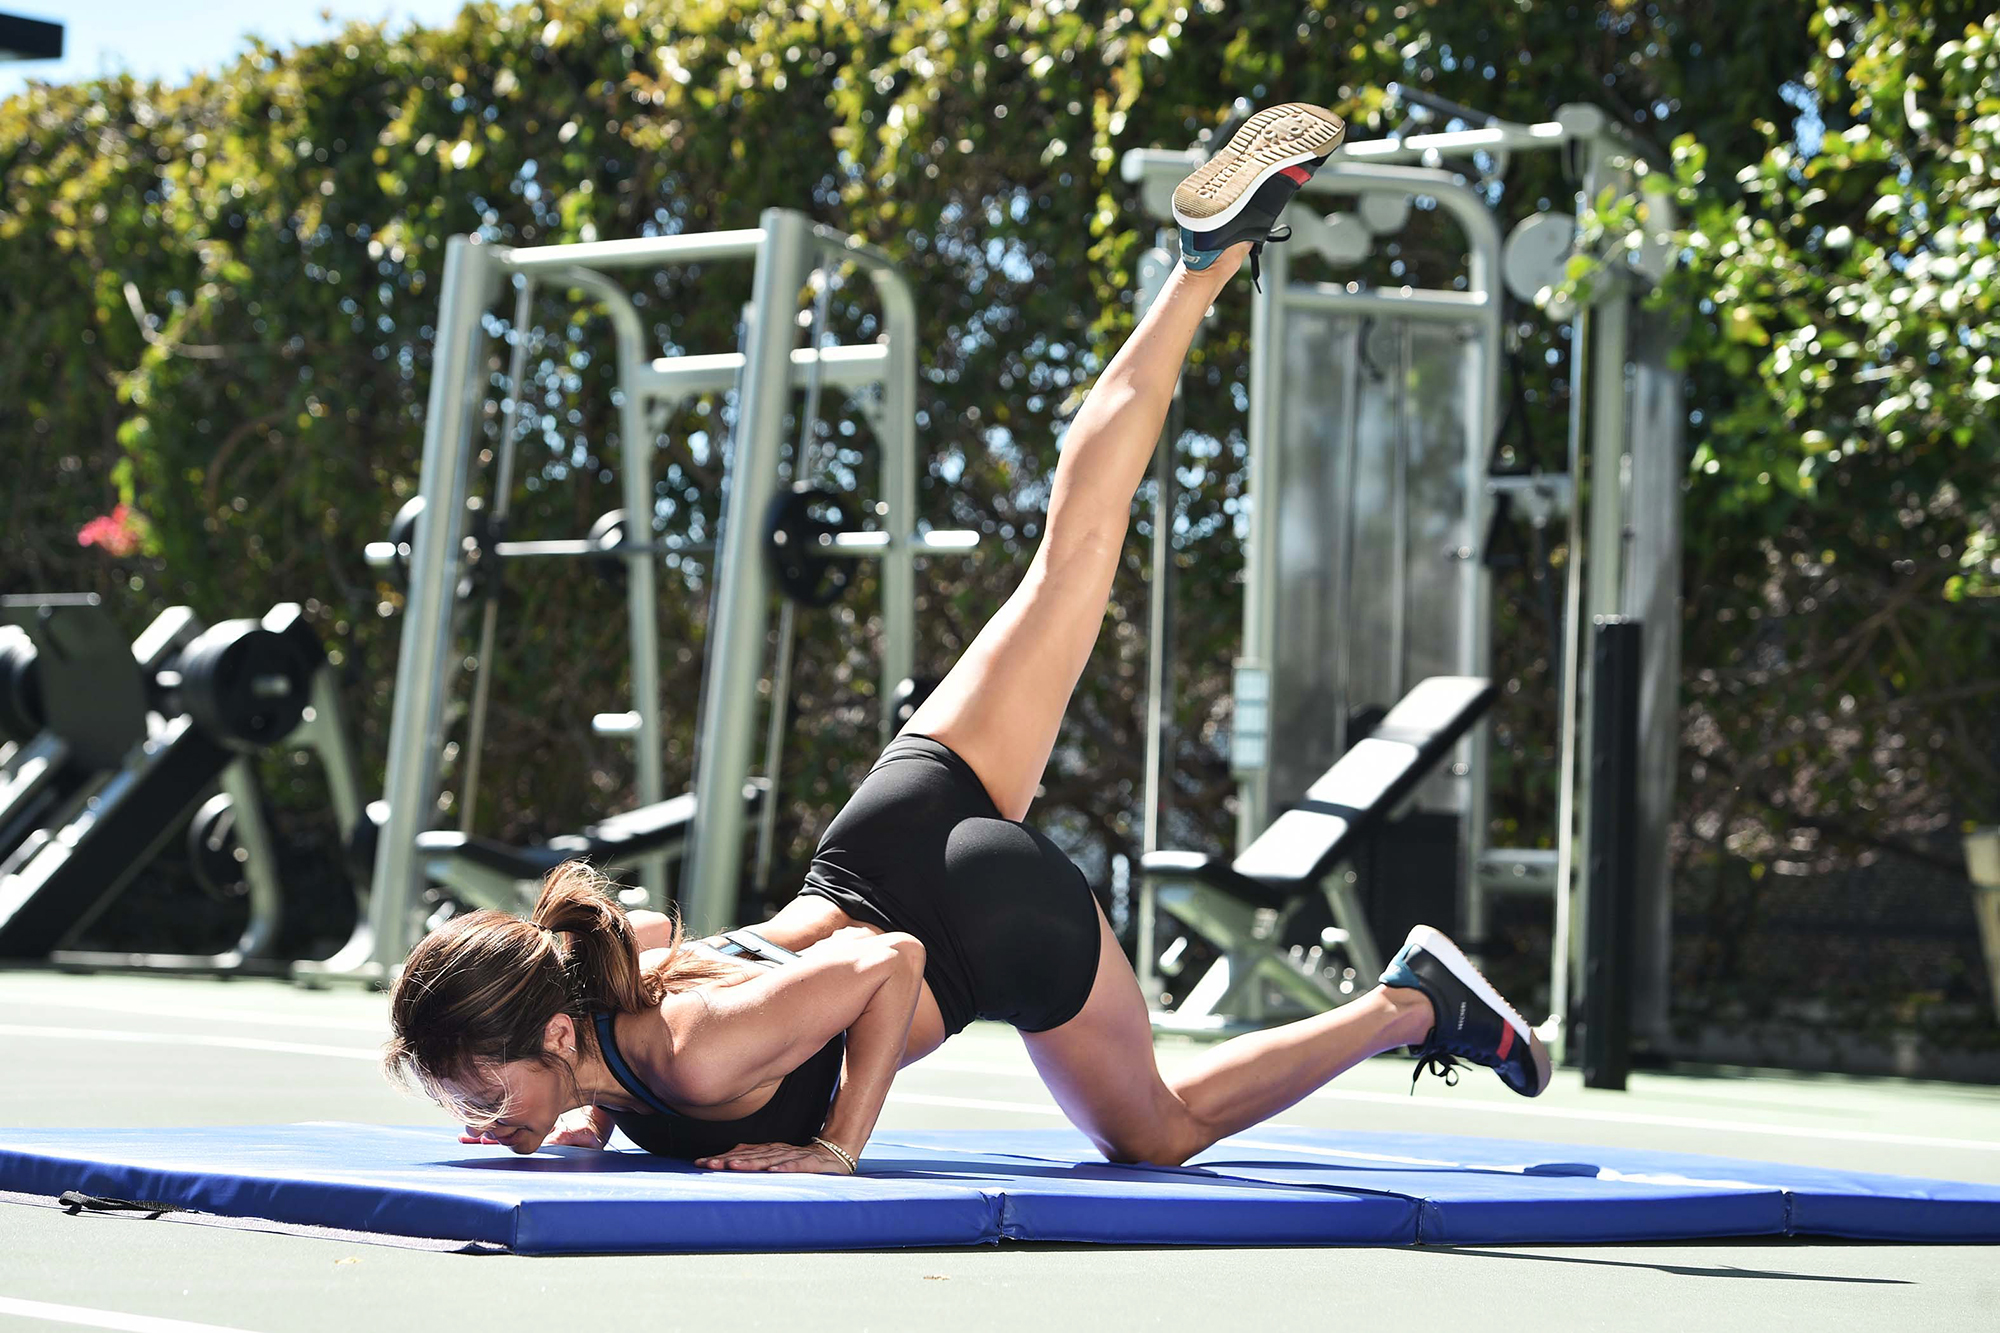 Brooke-Burke's-Go-To-Exercises-to-Do-in-the-Backyard - Make it a compound move!